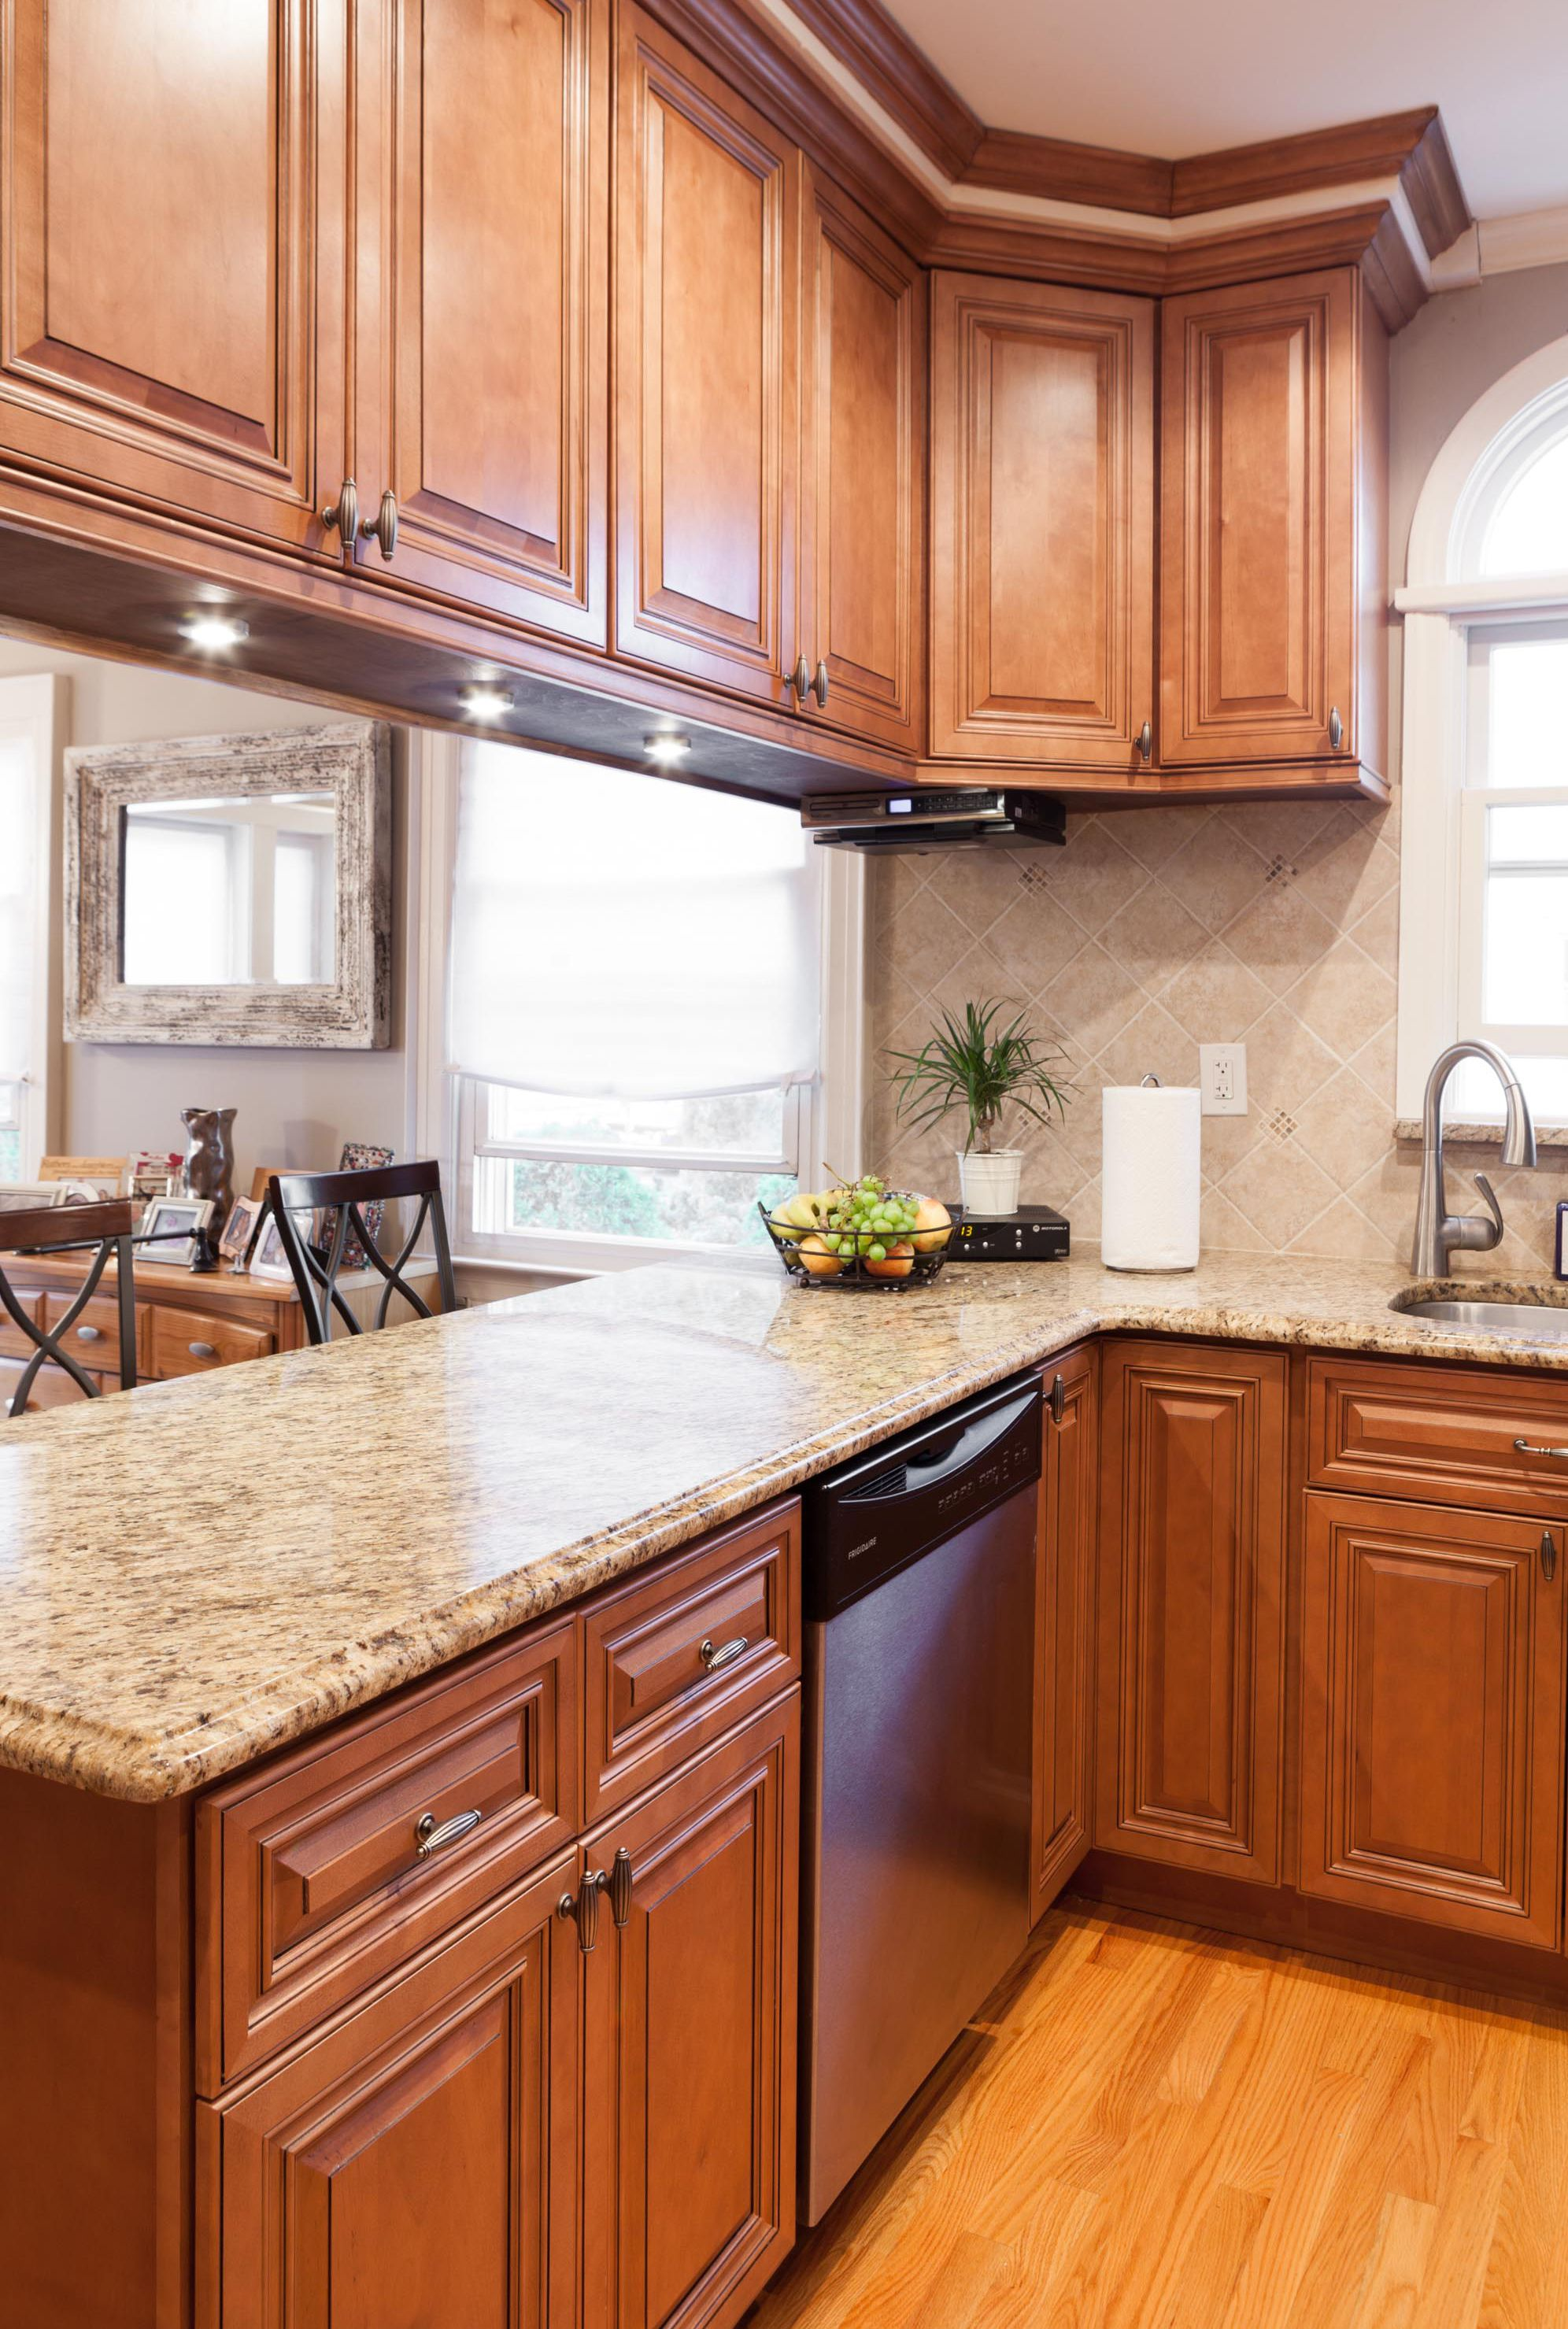 Uncategorized Maple Kitchen Countertops what color granite countertops go with light maple cabinets kitchens and lights